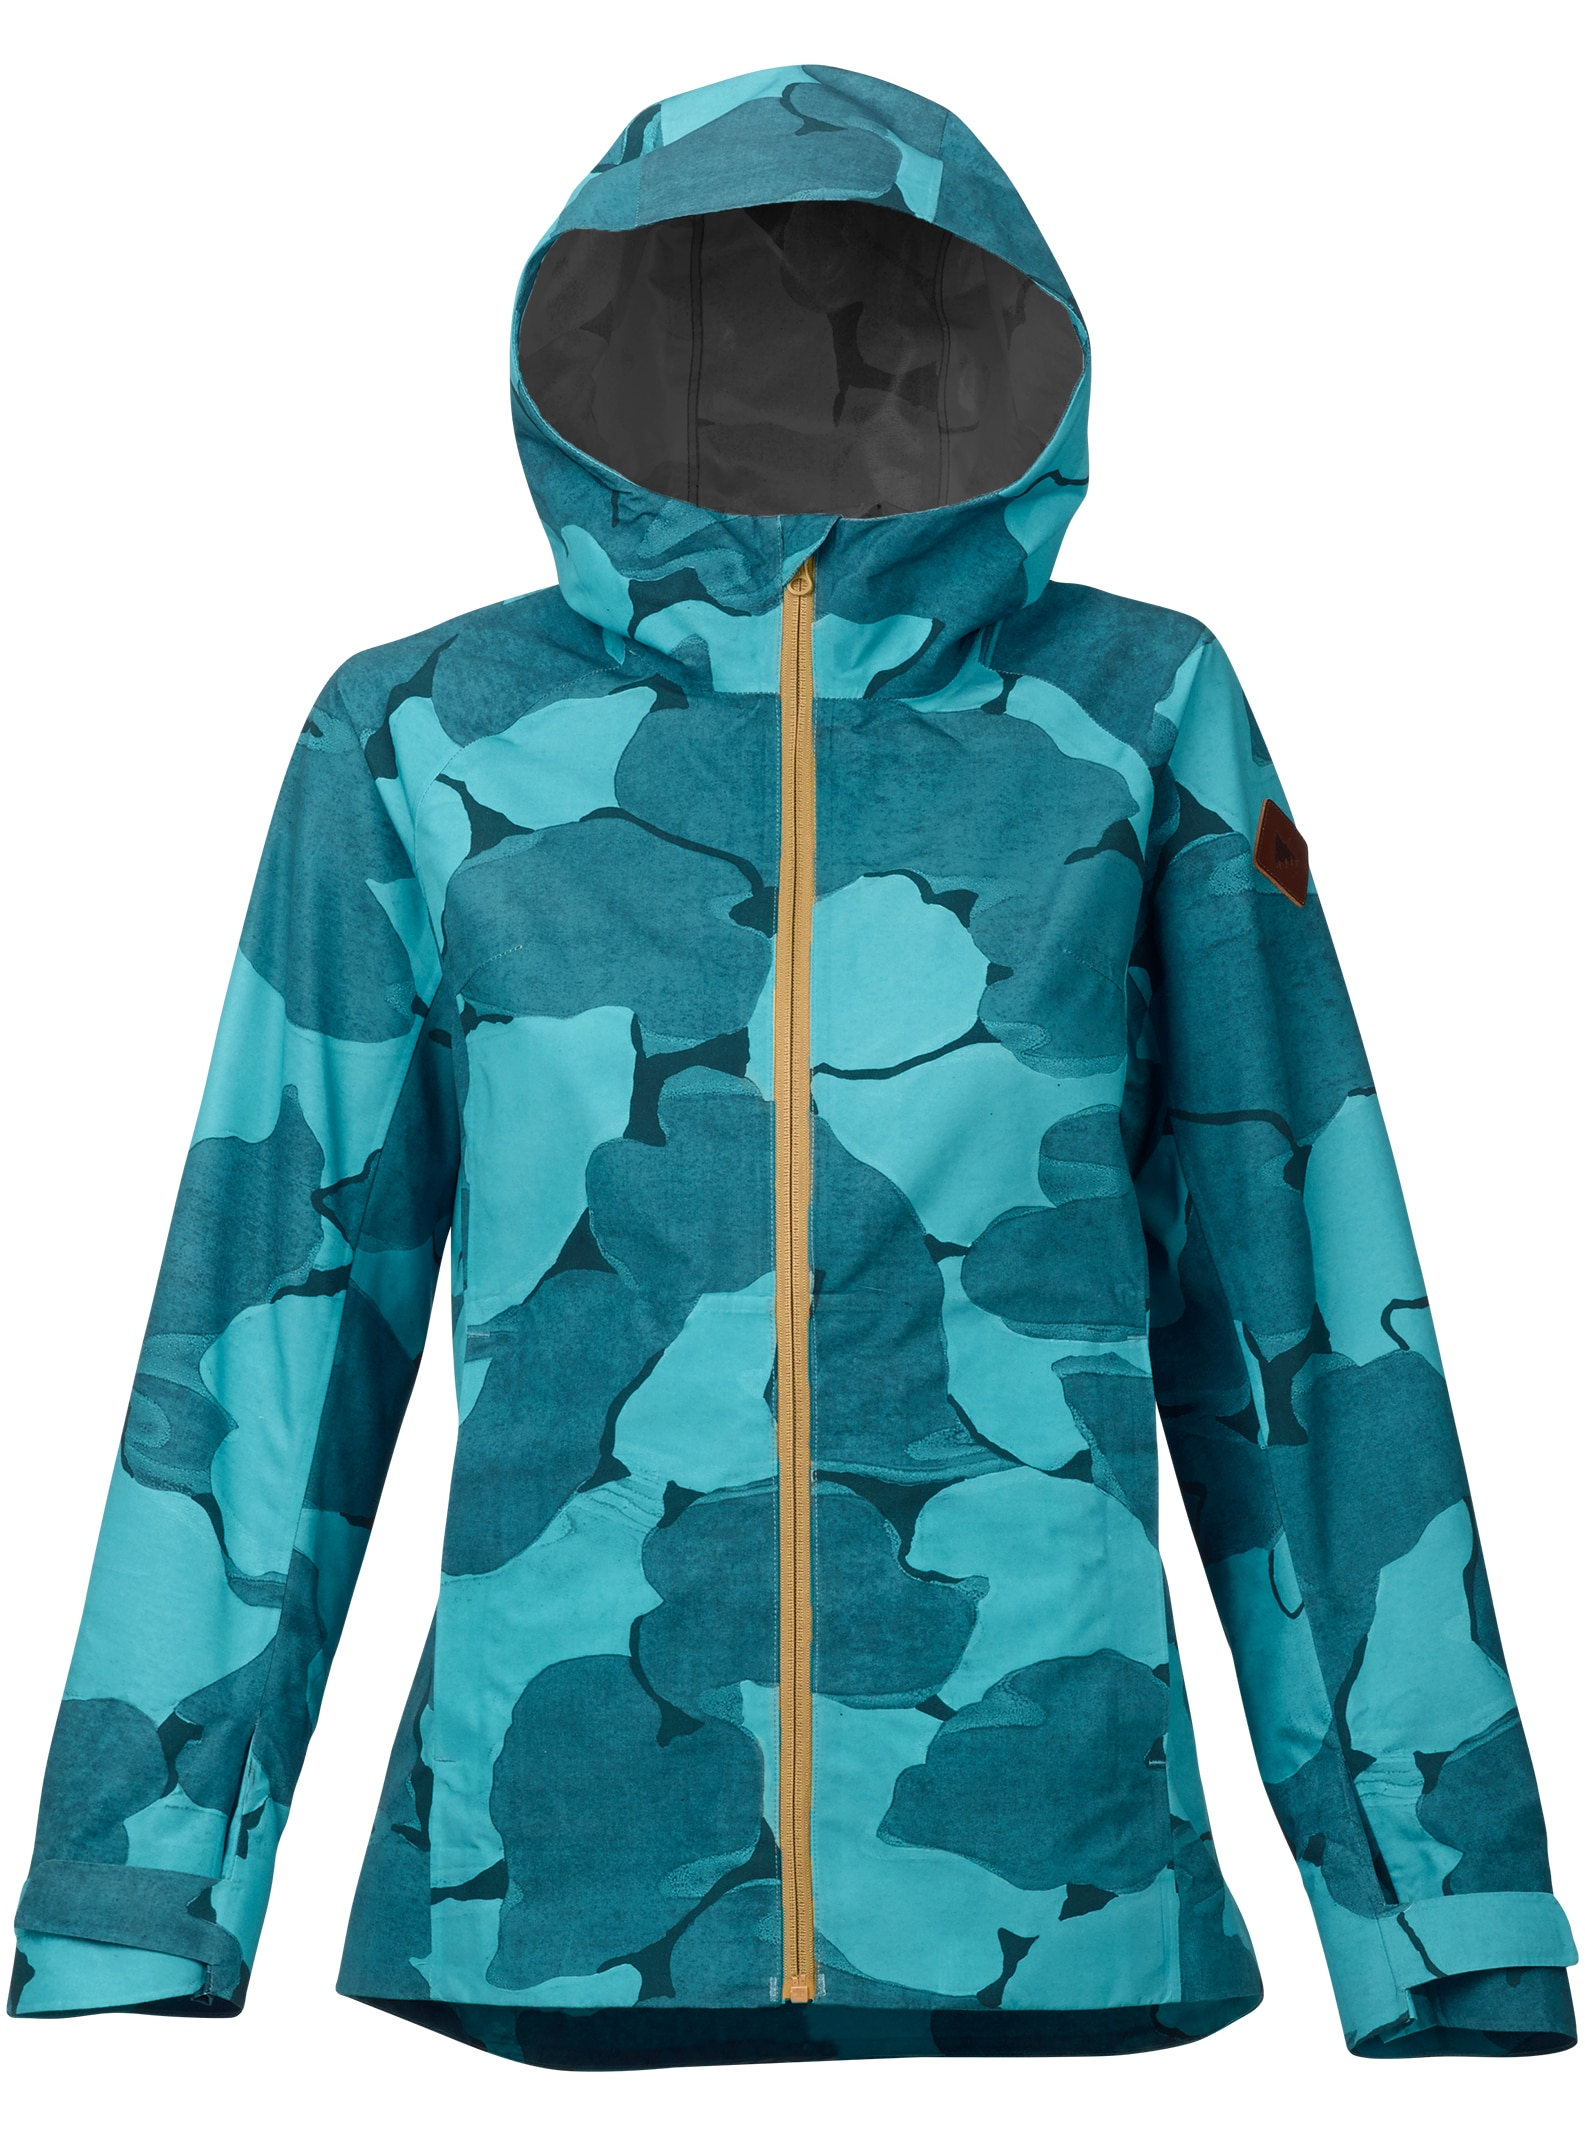 Burton GORE-TEX® 2L Day-Light Rain Jacket shown in Everglade Pond Camo